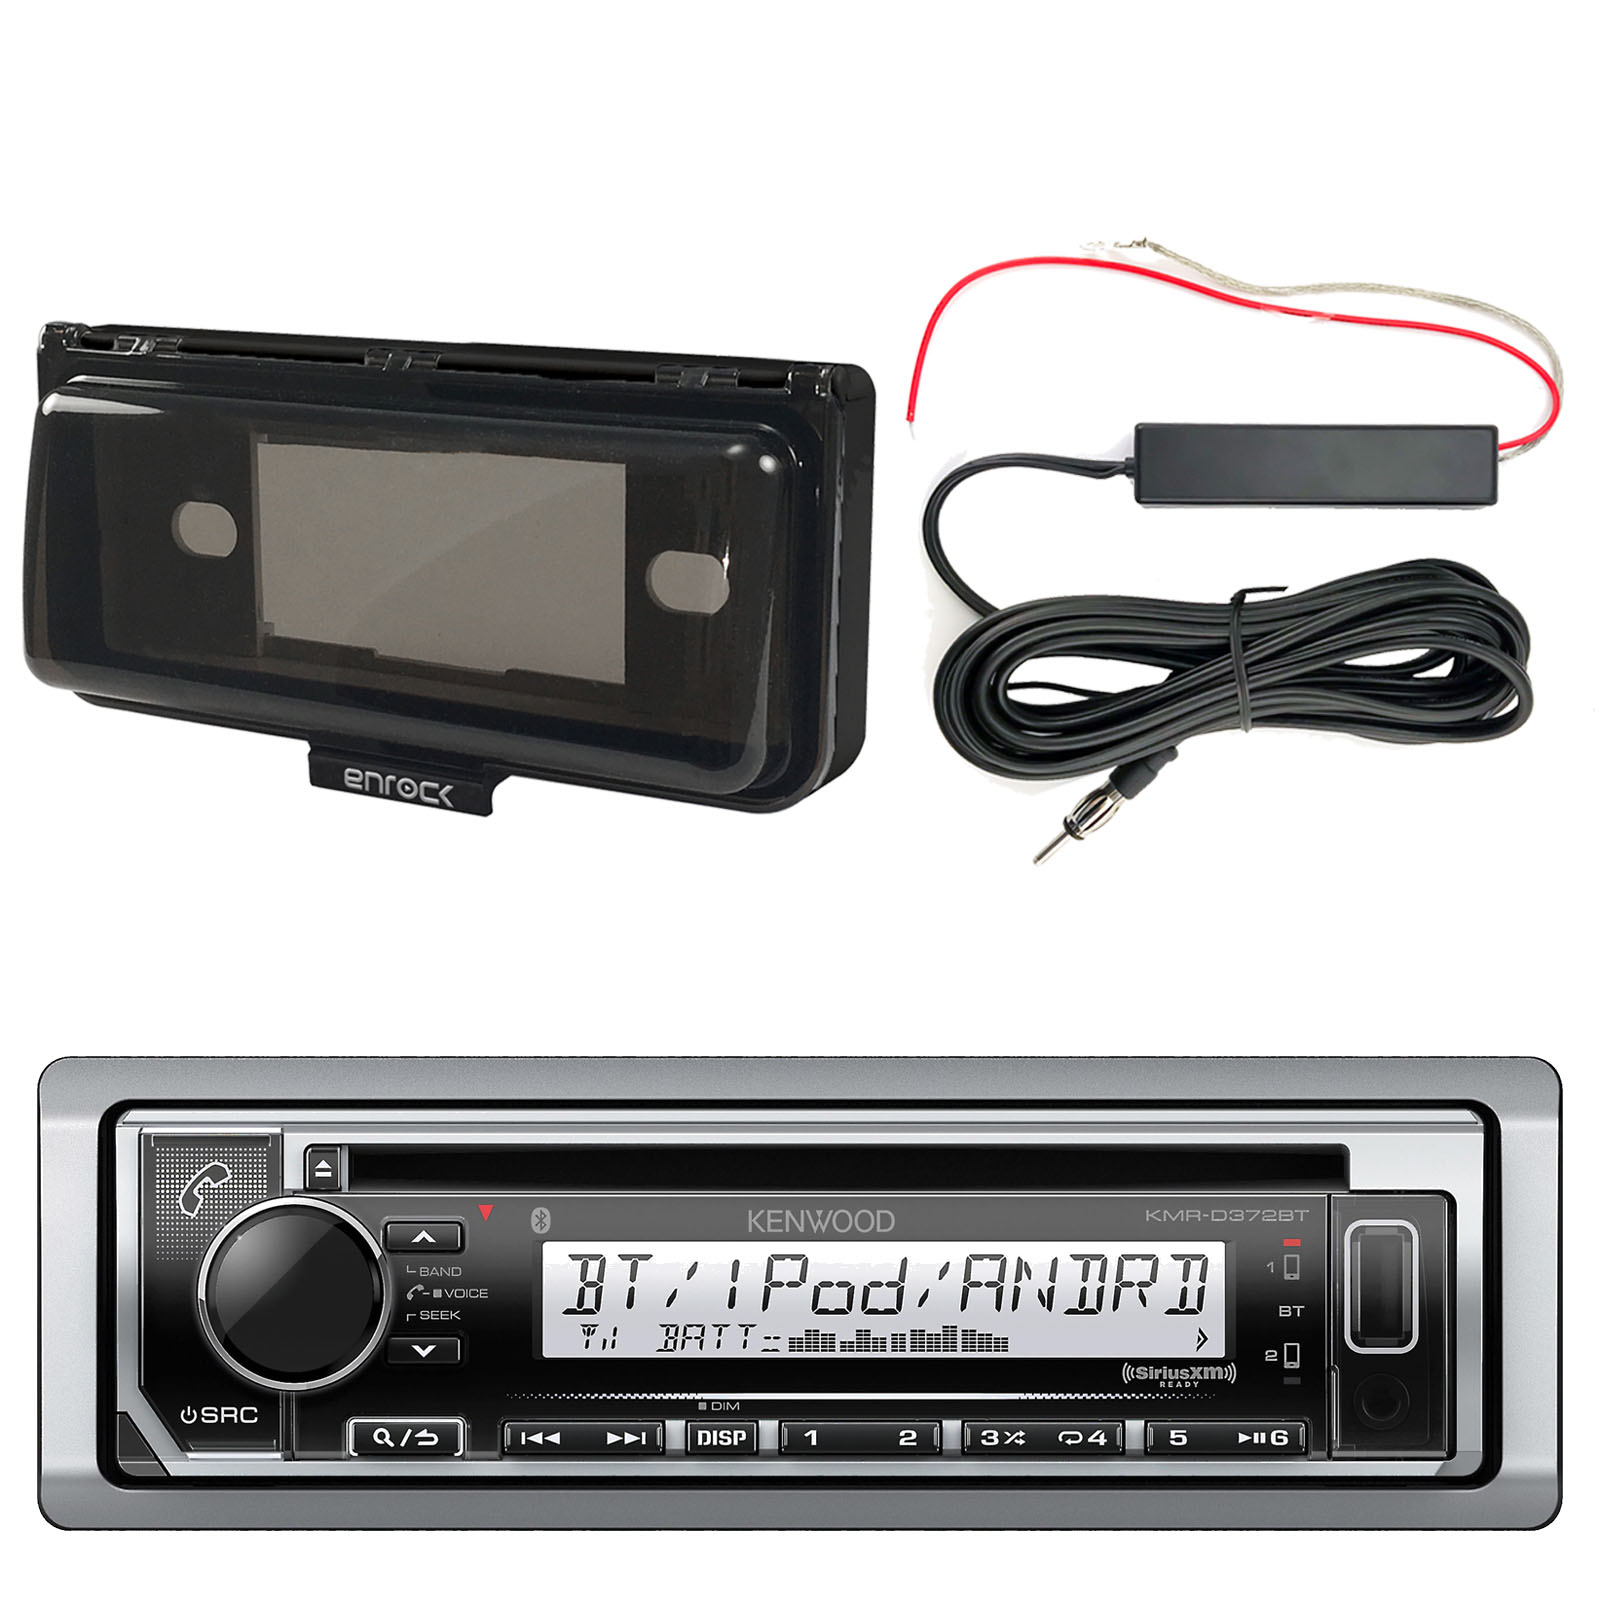 Kenwood KMRD372BT Marine CD Bluetooth Receiver, Single DIN Dash Installation Kit, Enrock 12 Volt Amp Booster Kit